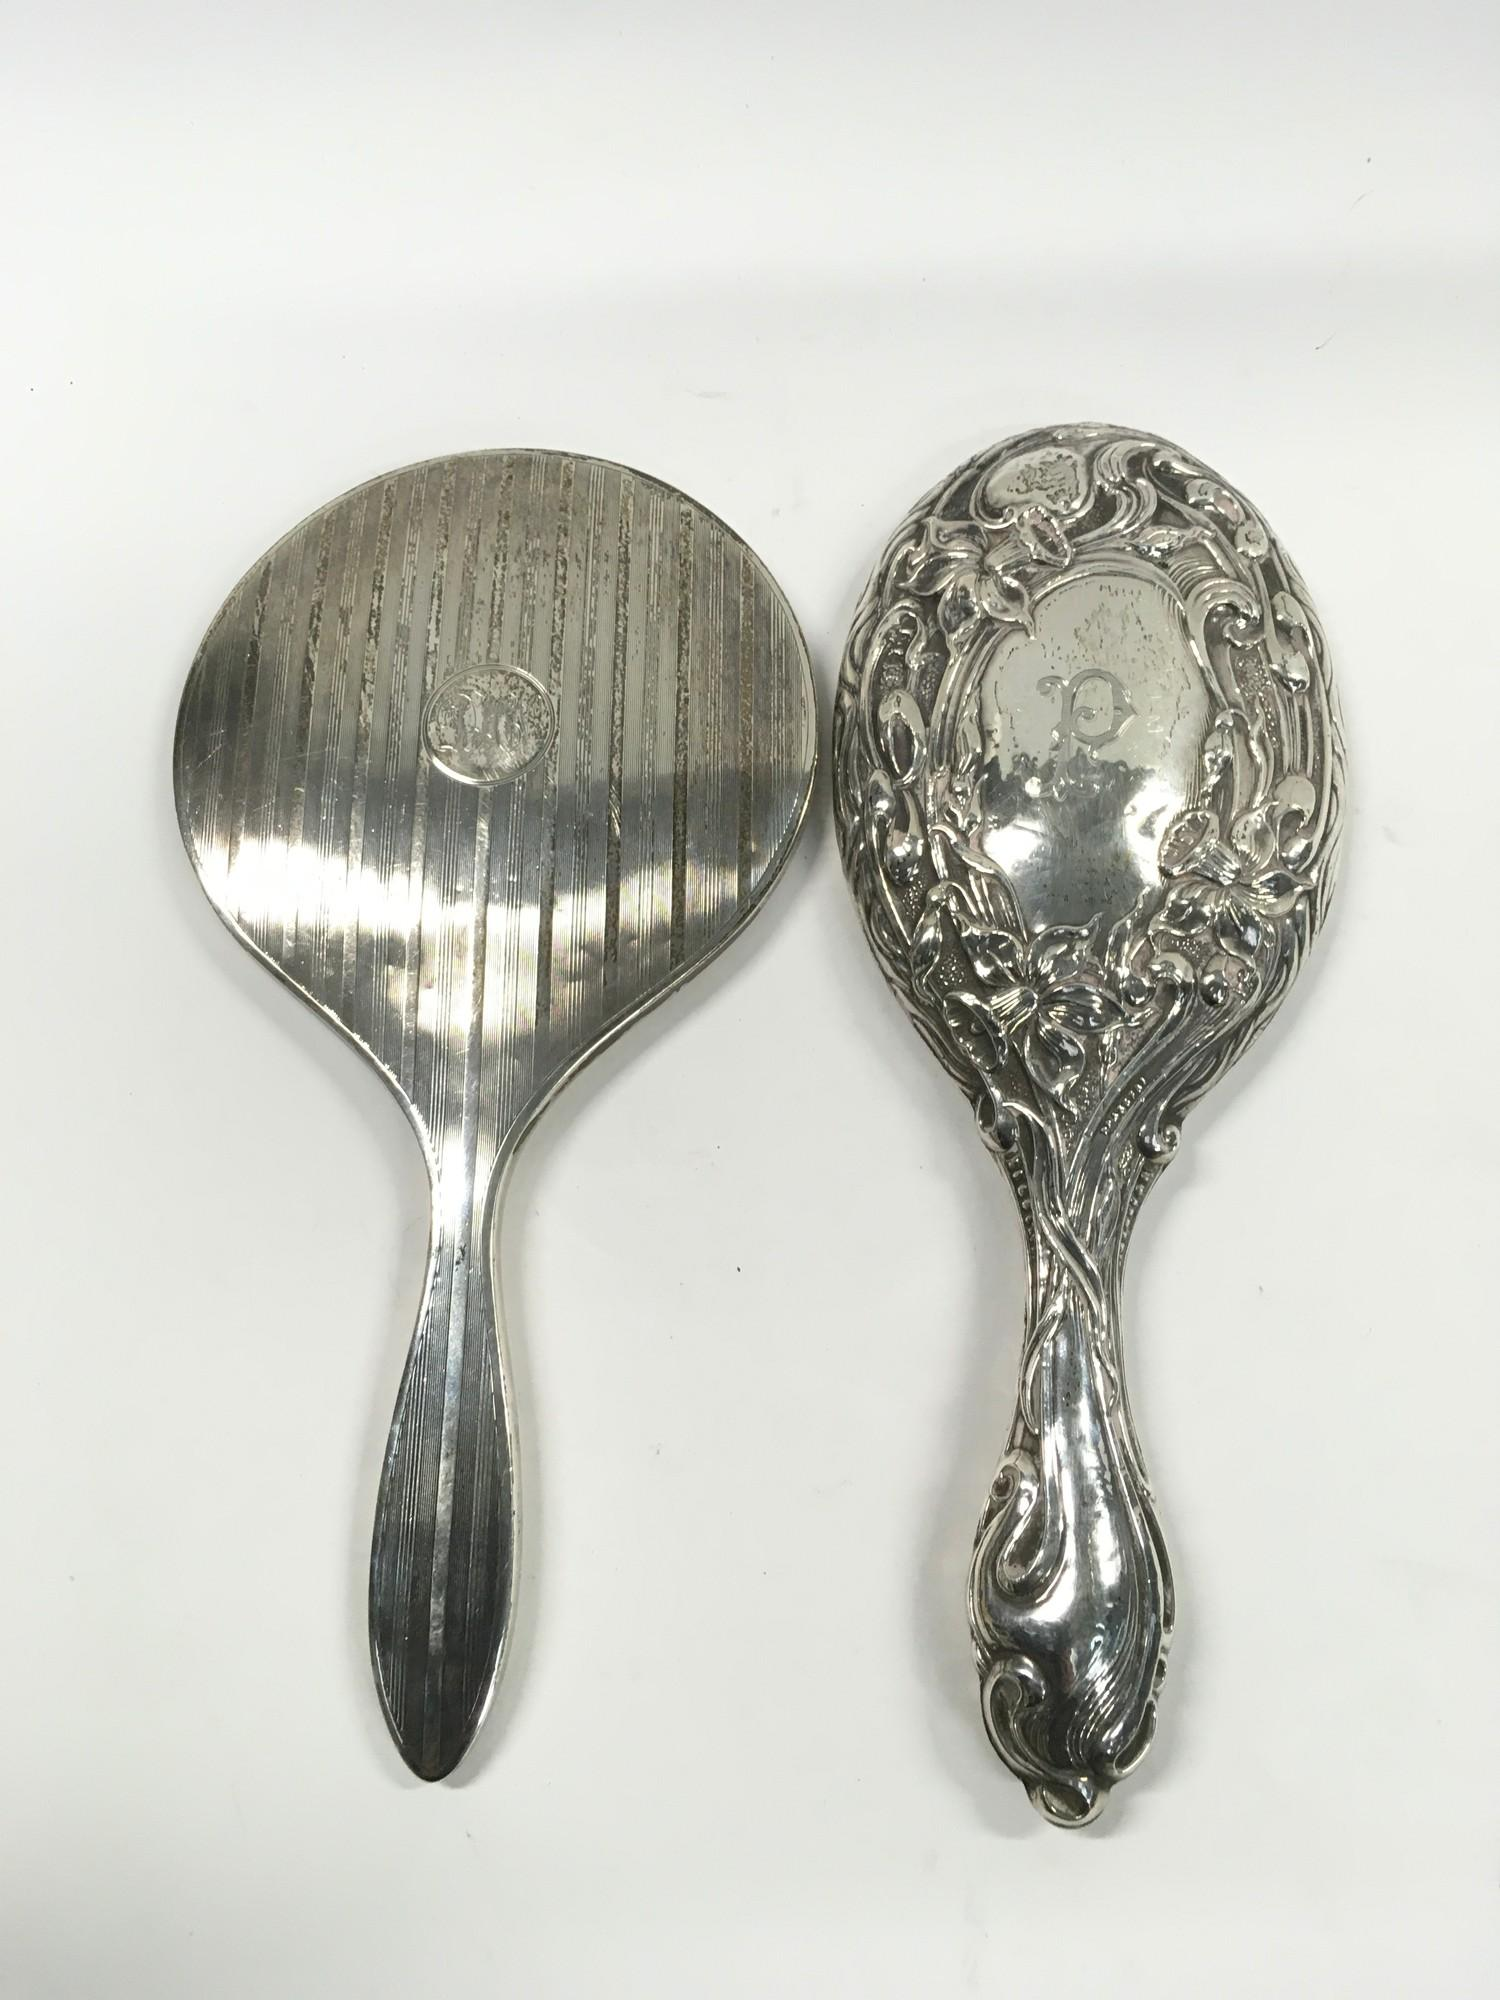 2 x Fully Hallmarked Silver Hand Mirrors, one Art Deco, the other Art Nouveau. - Image 2 of 3